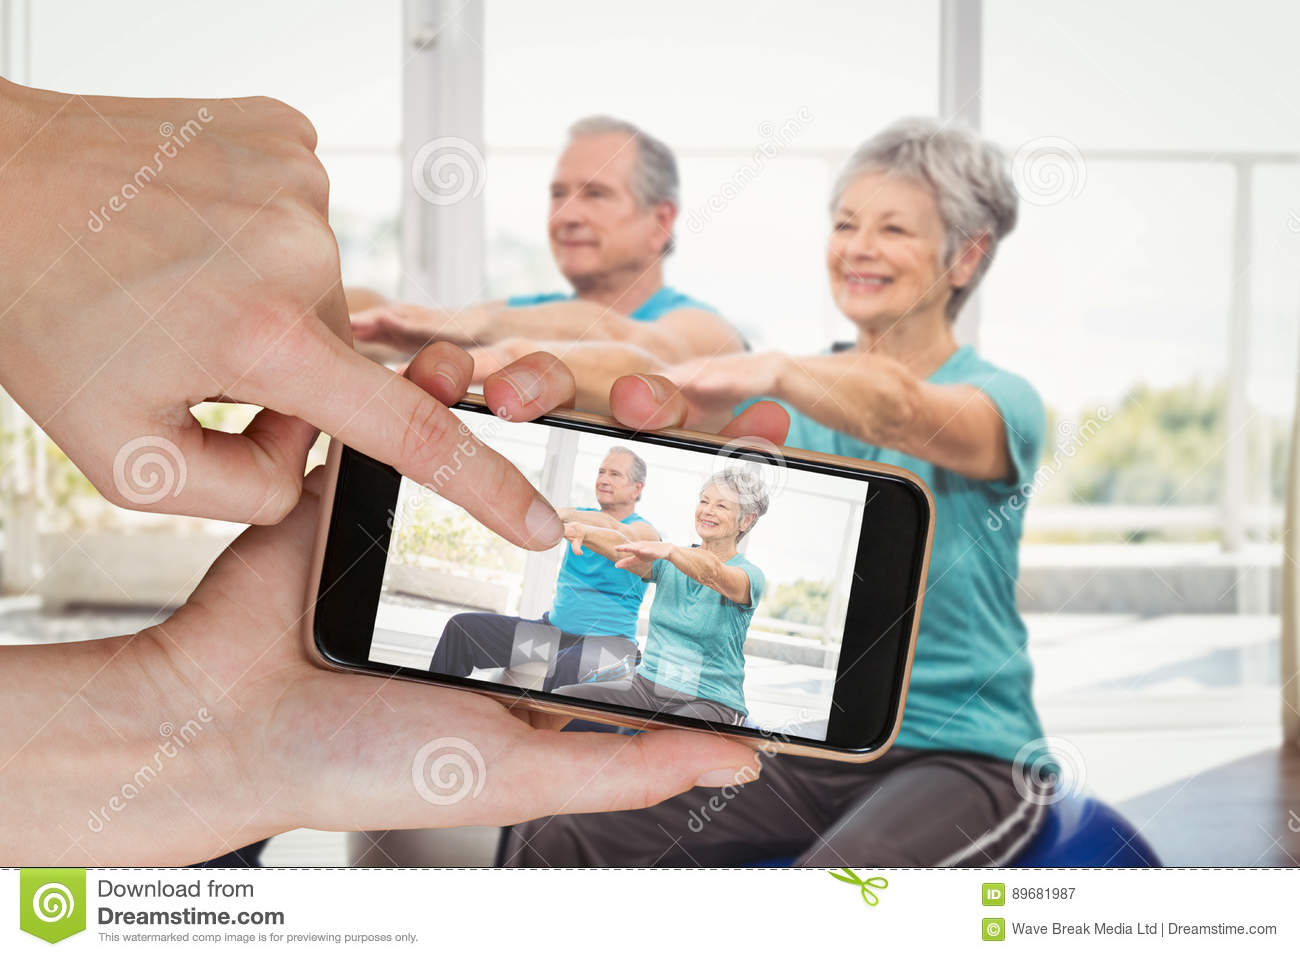 Composite image of hands touching smart phone